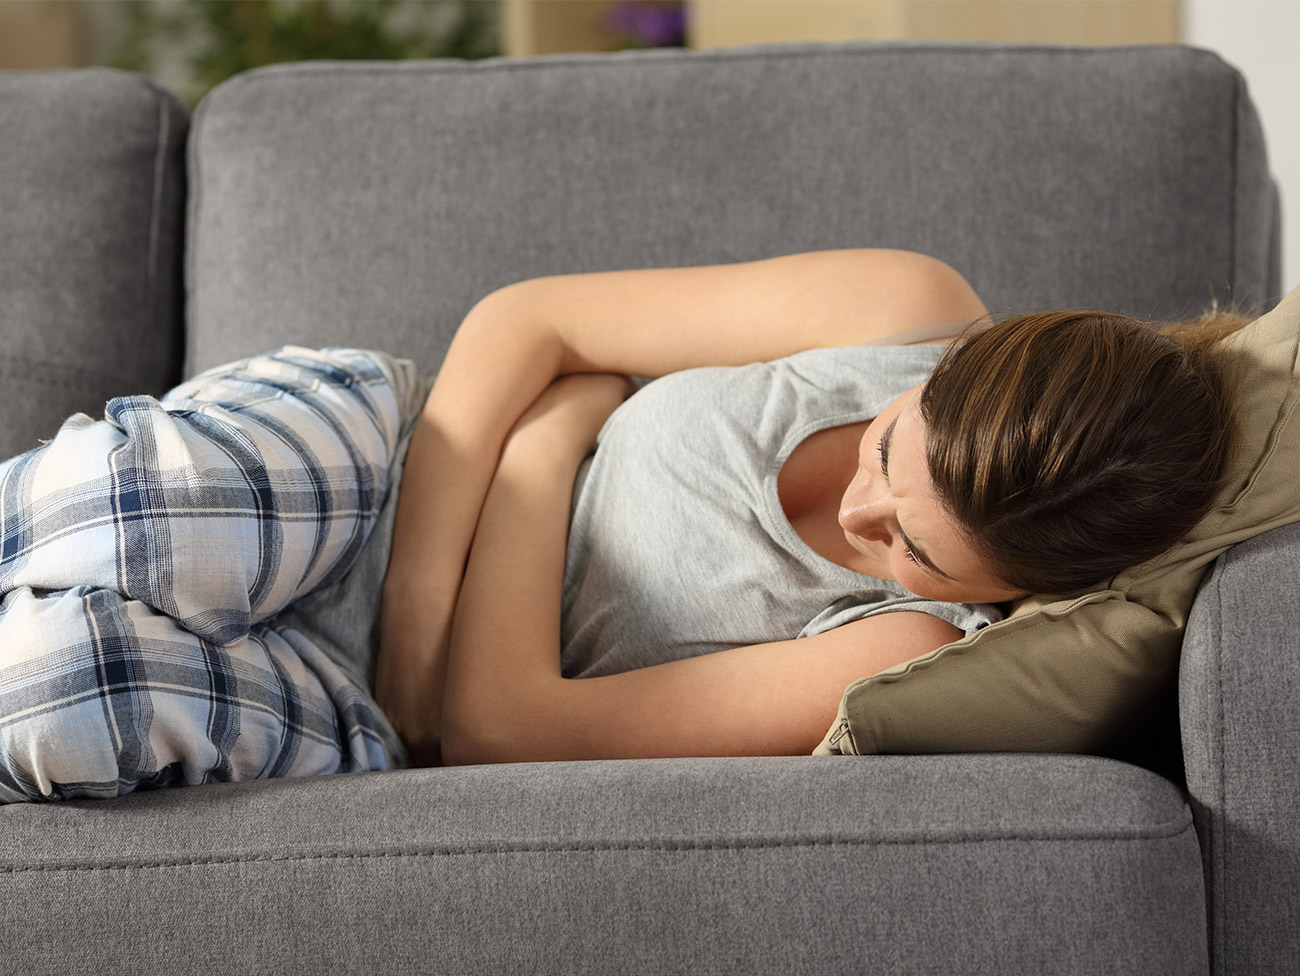 Woman laying on a couch holding her stomach